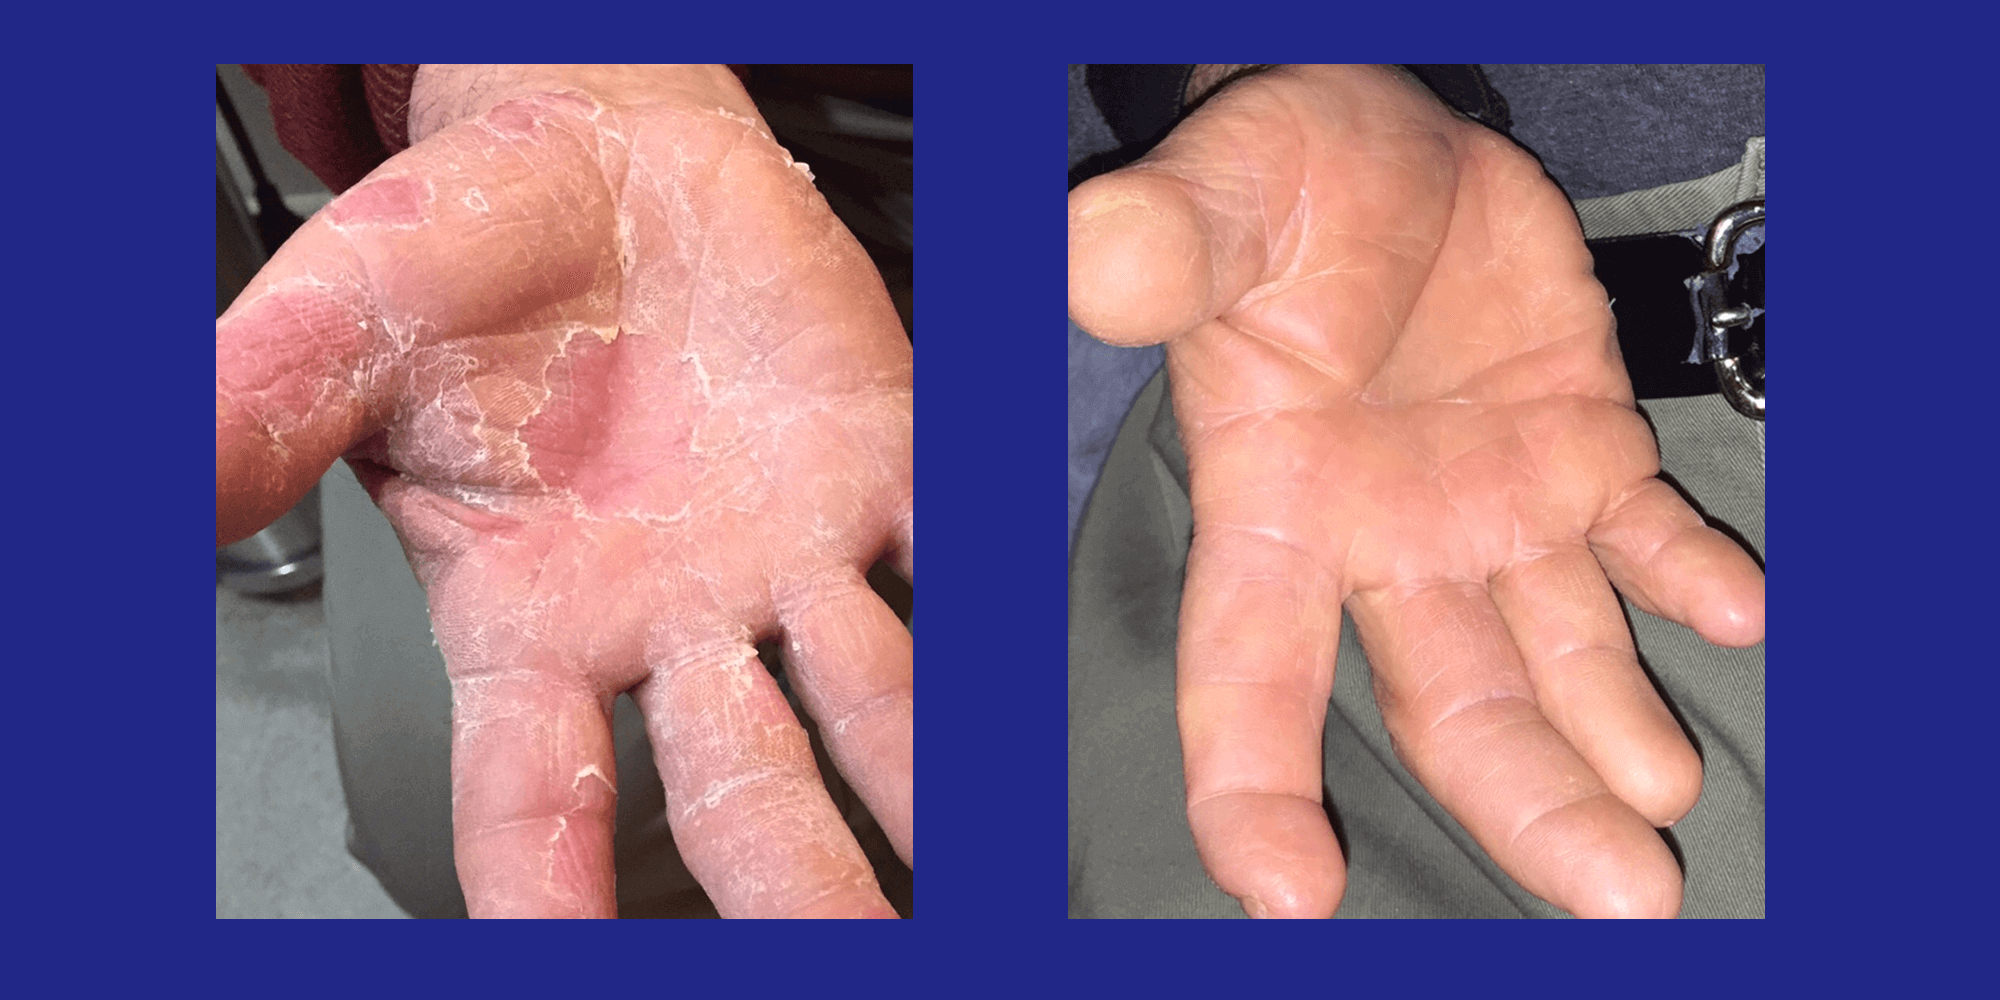 Fungus on the Hands